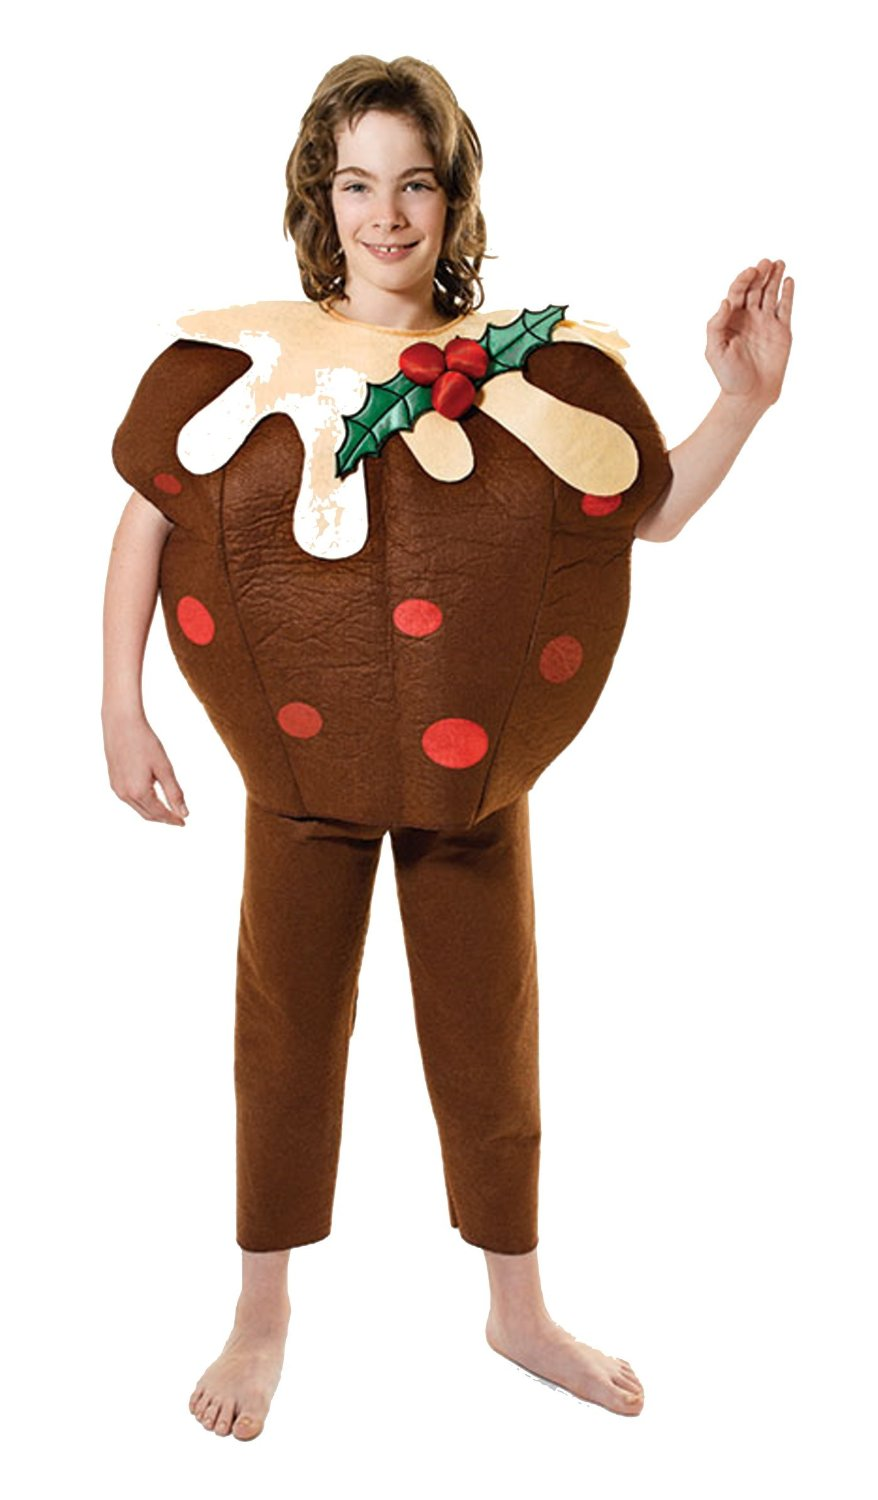 About childrens kids christmas pudding fancy dress costume 128cm